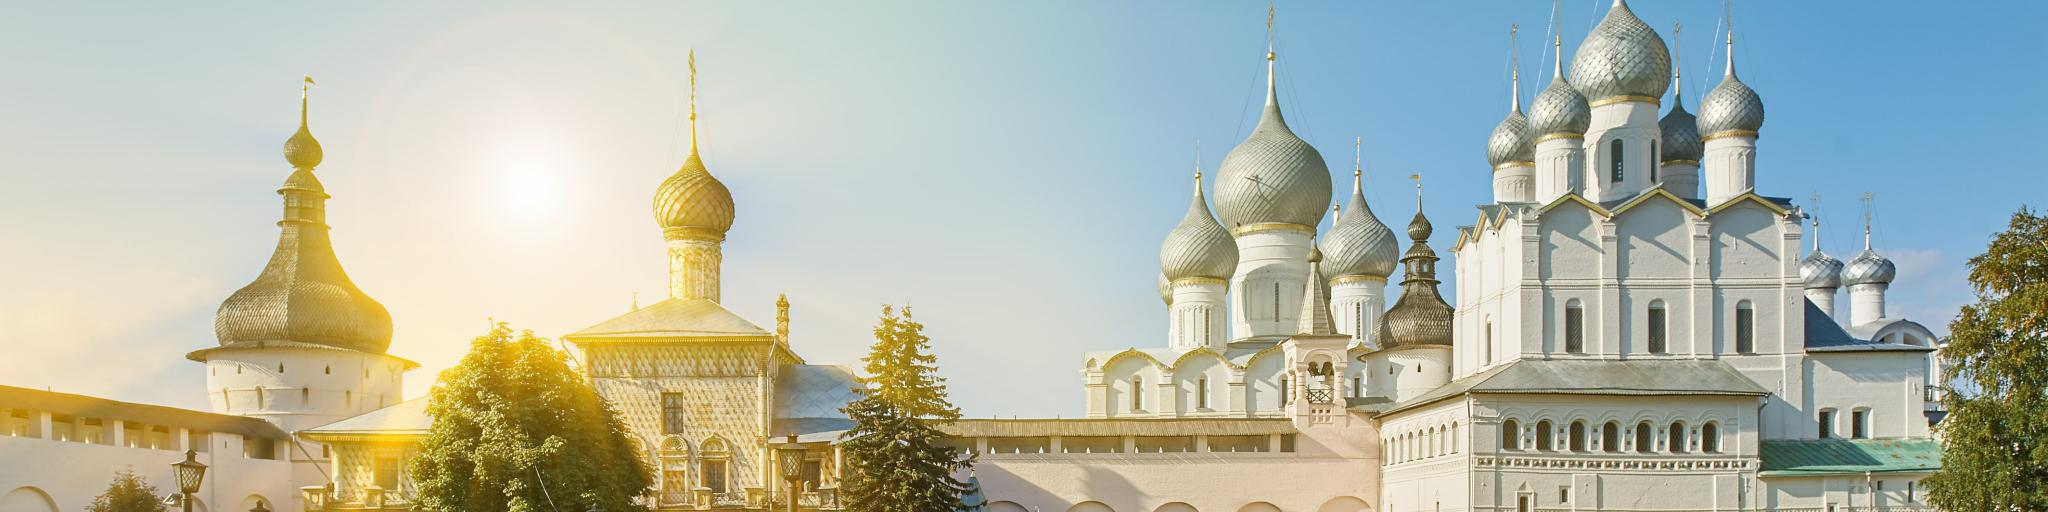 Sunlight streaming onto the white Assumption Cathedral and church of the Resurrection in Rostov Kremlin.